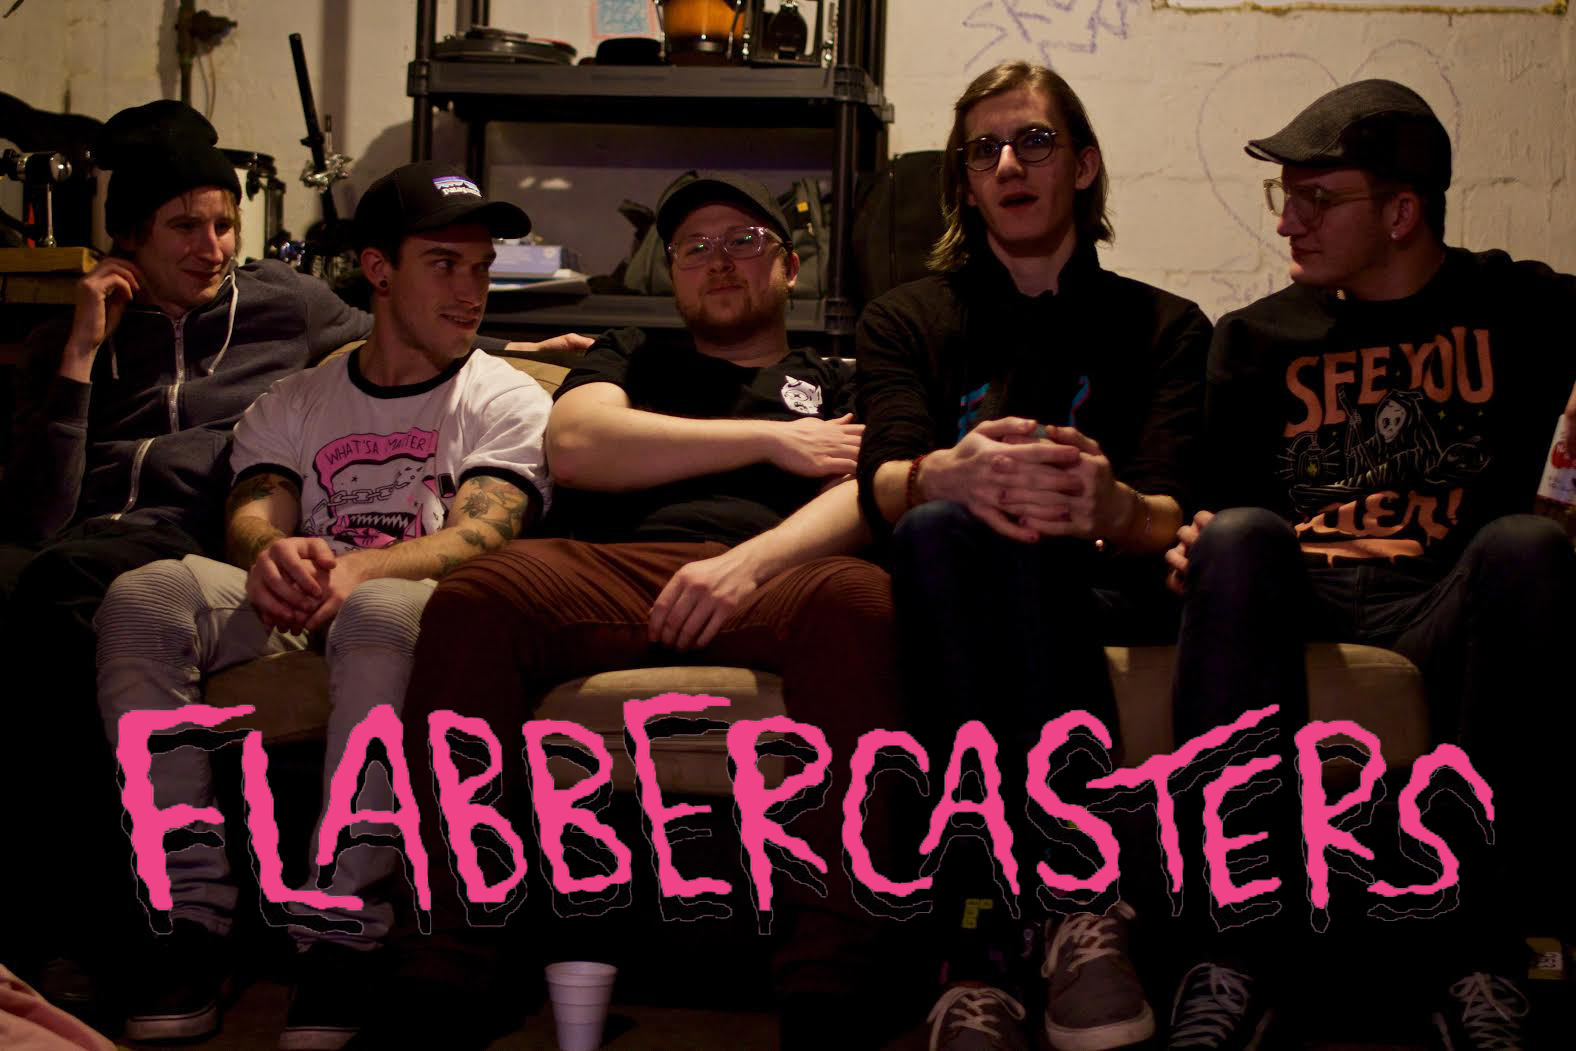 flabbercasters_bio_pic.png